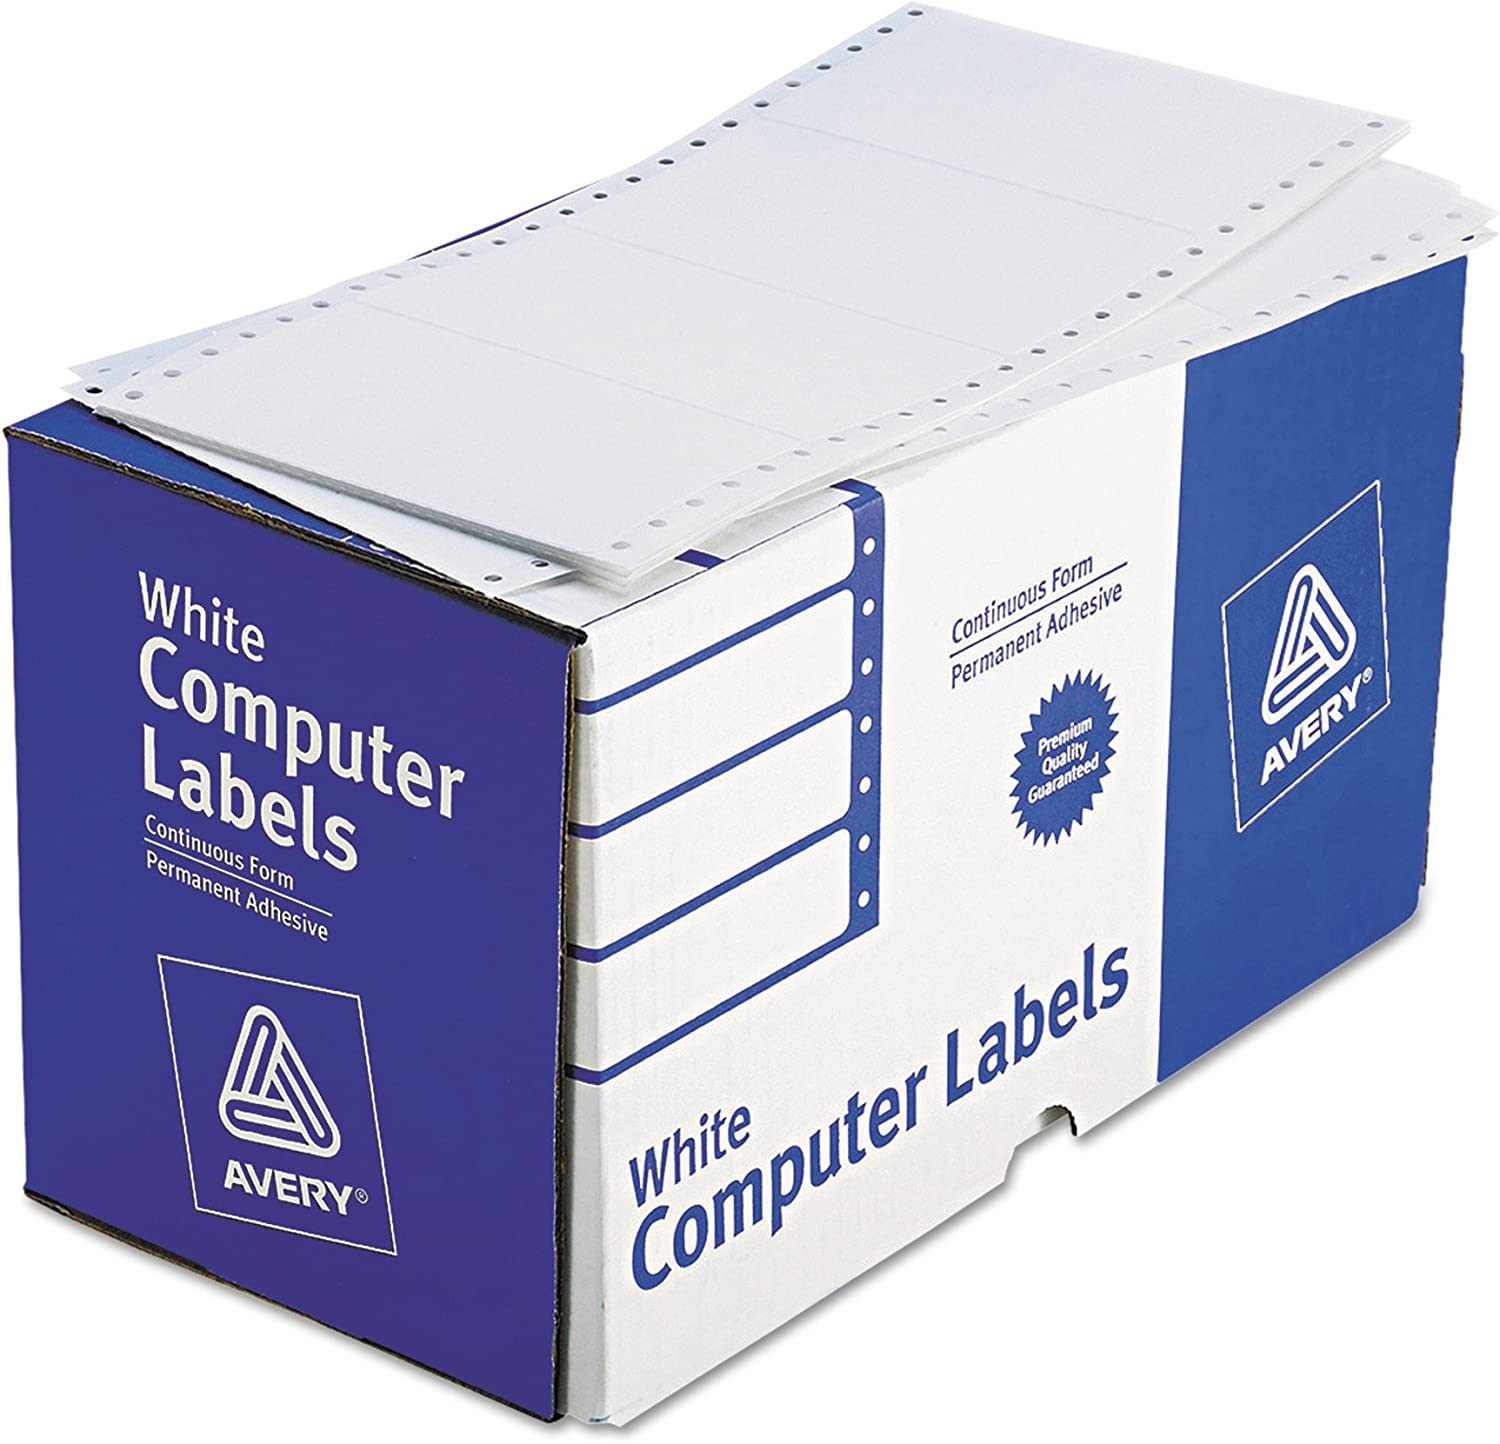 Avery 4076 Dot Matrix Printer Shipping Labels, 1 Across, 2 15/16 x 5, White (Box of 3000) : Continuous Form Labels : Office Products